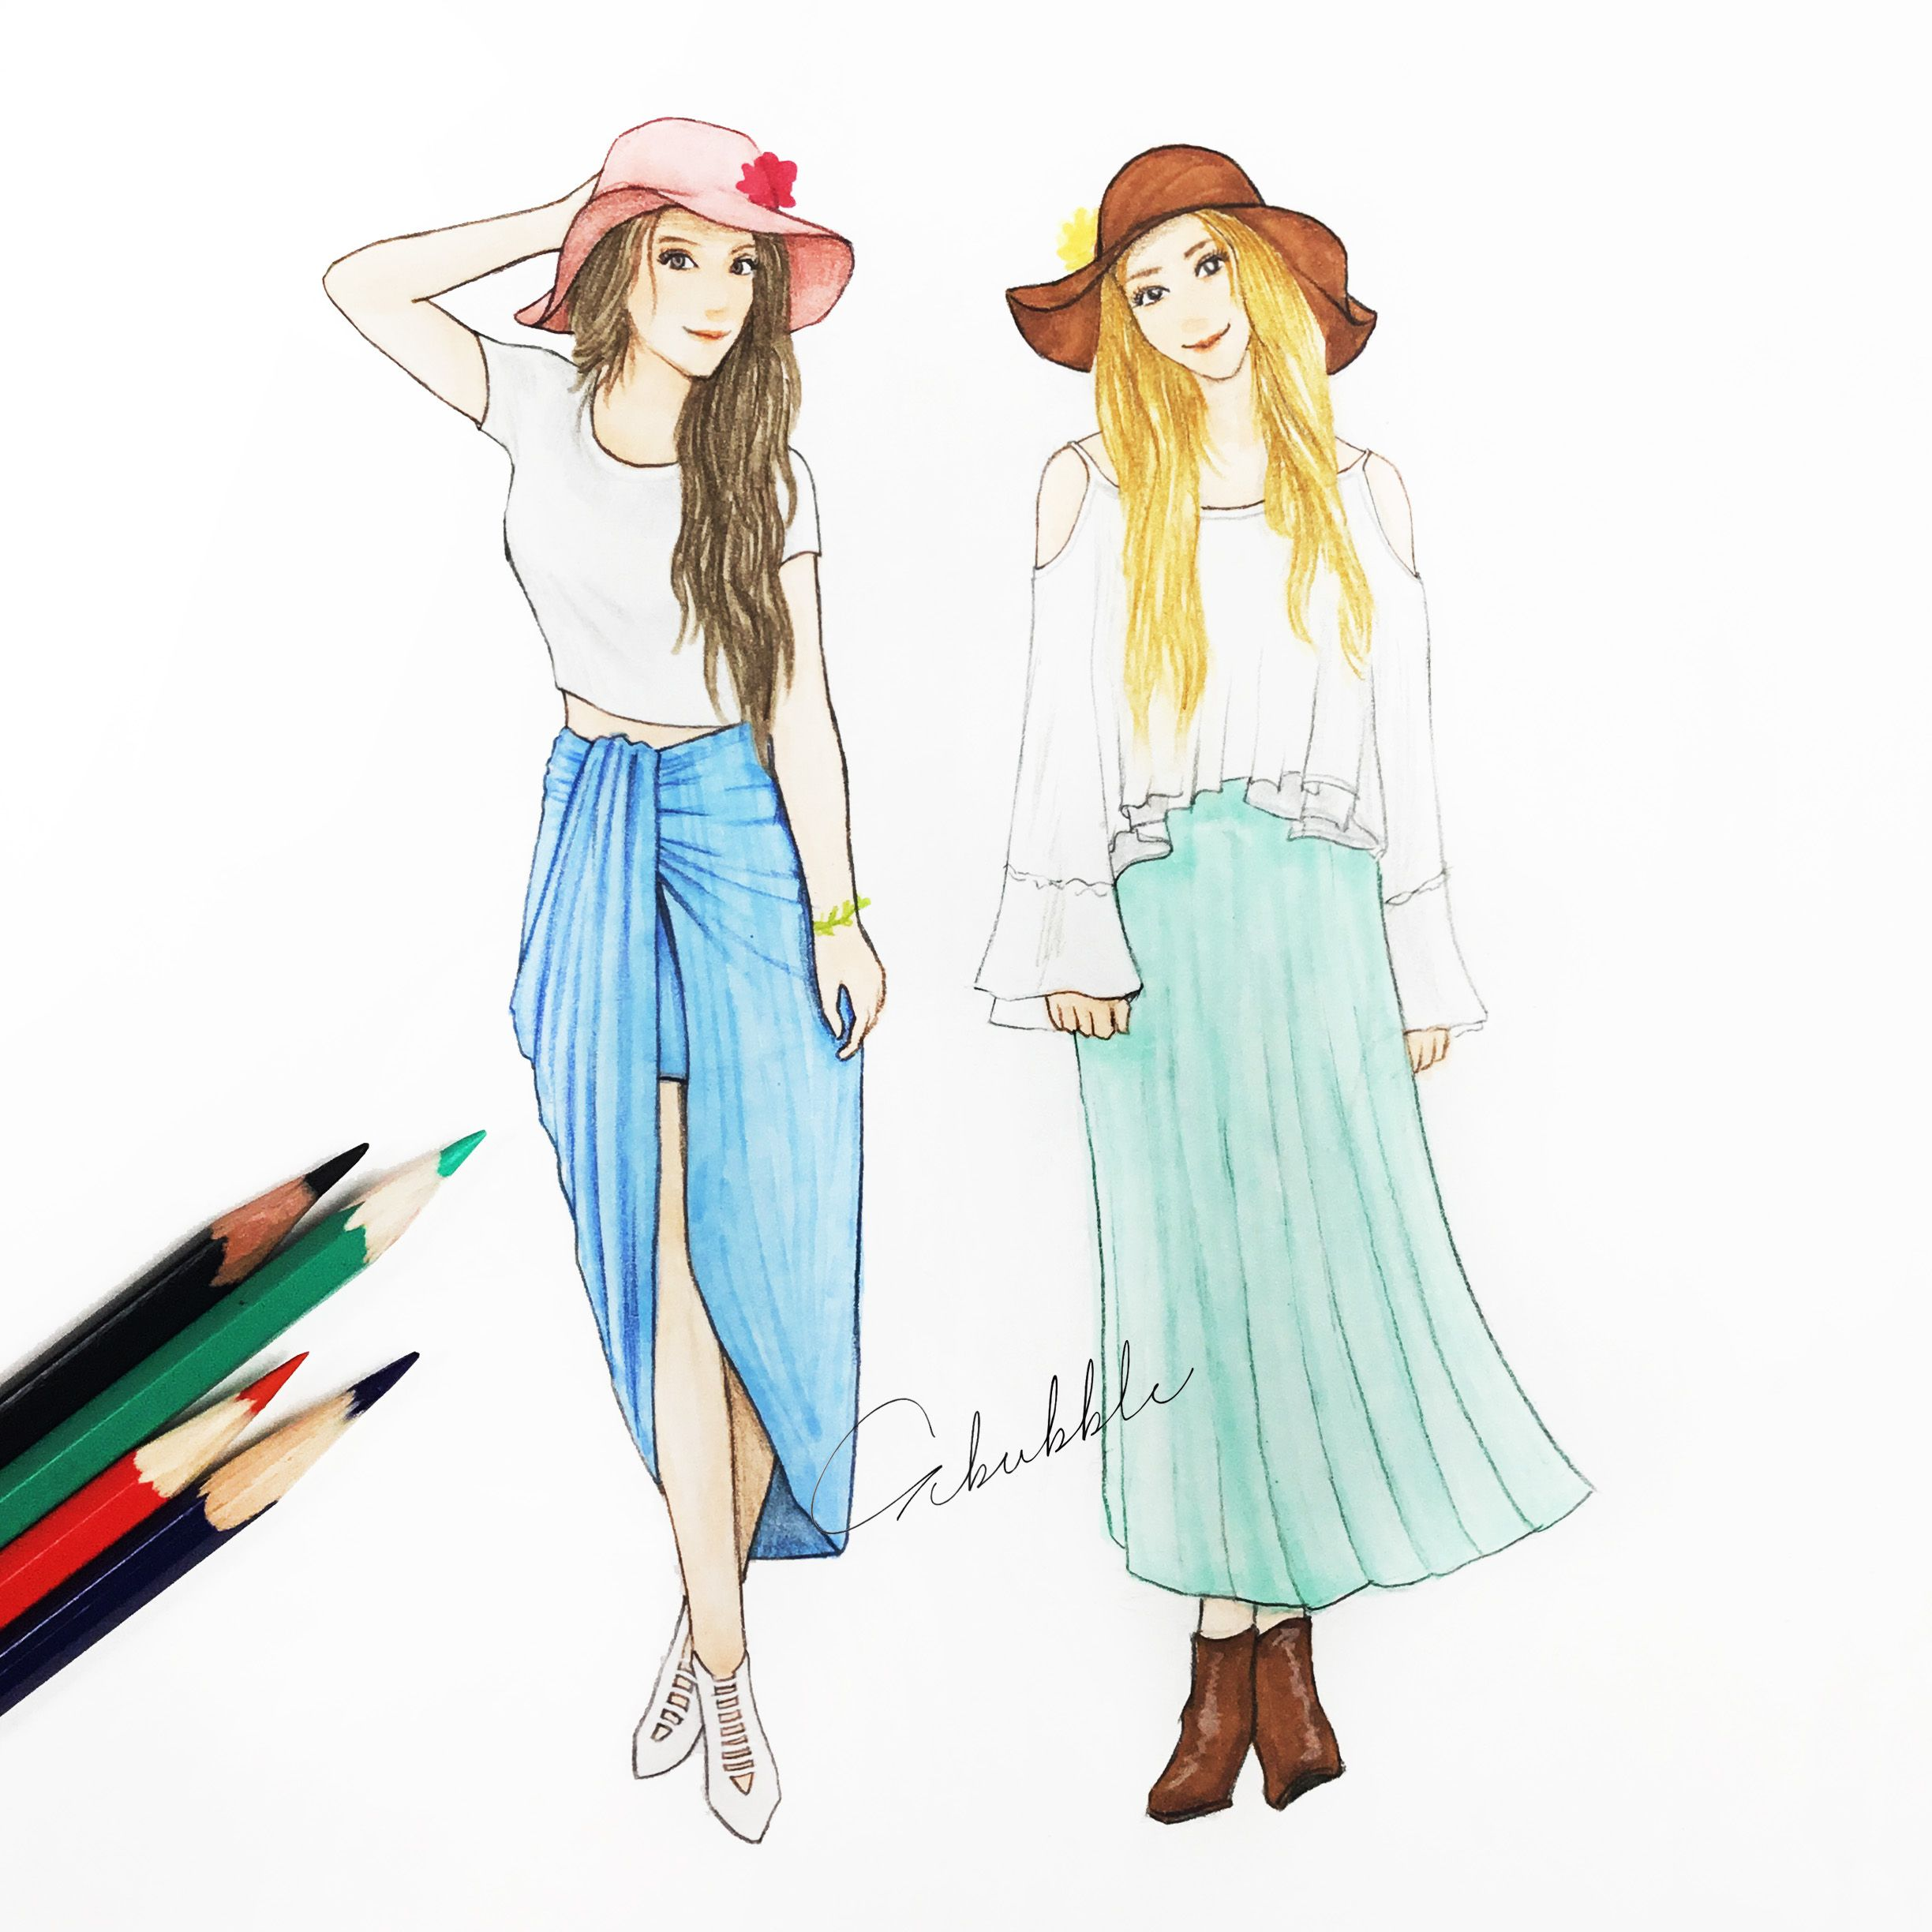 Beautiful dresses | Best Friends Forever | Bff drawings ...